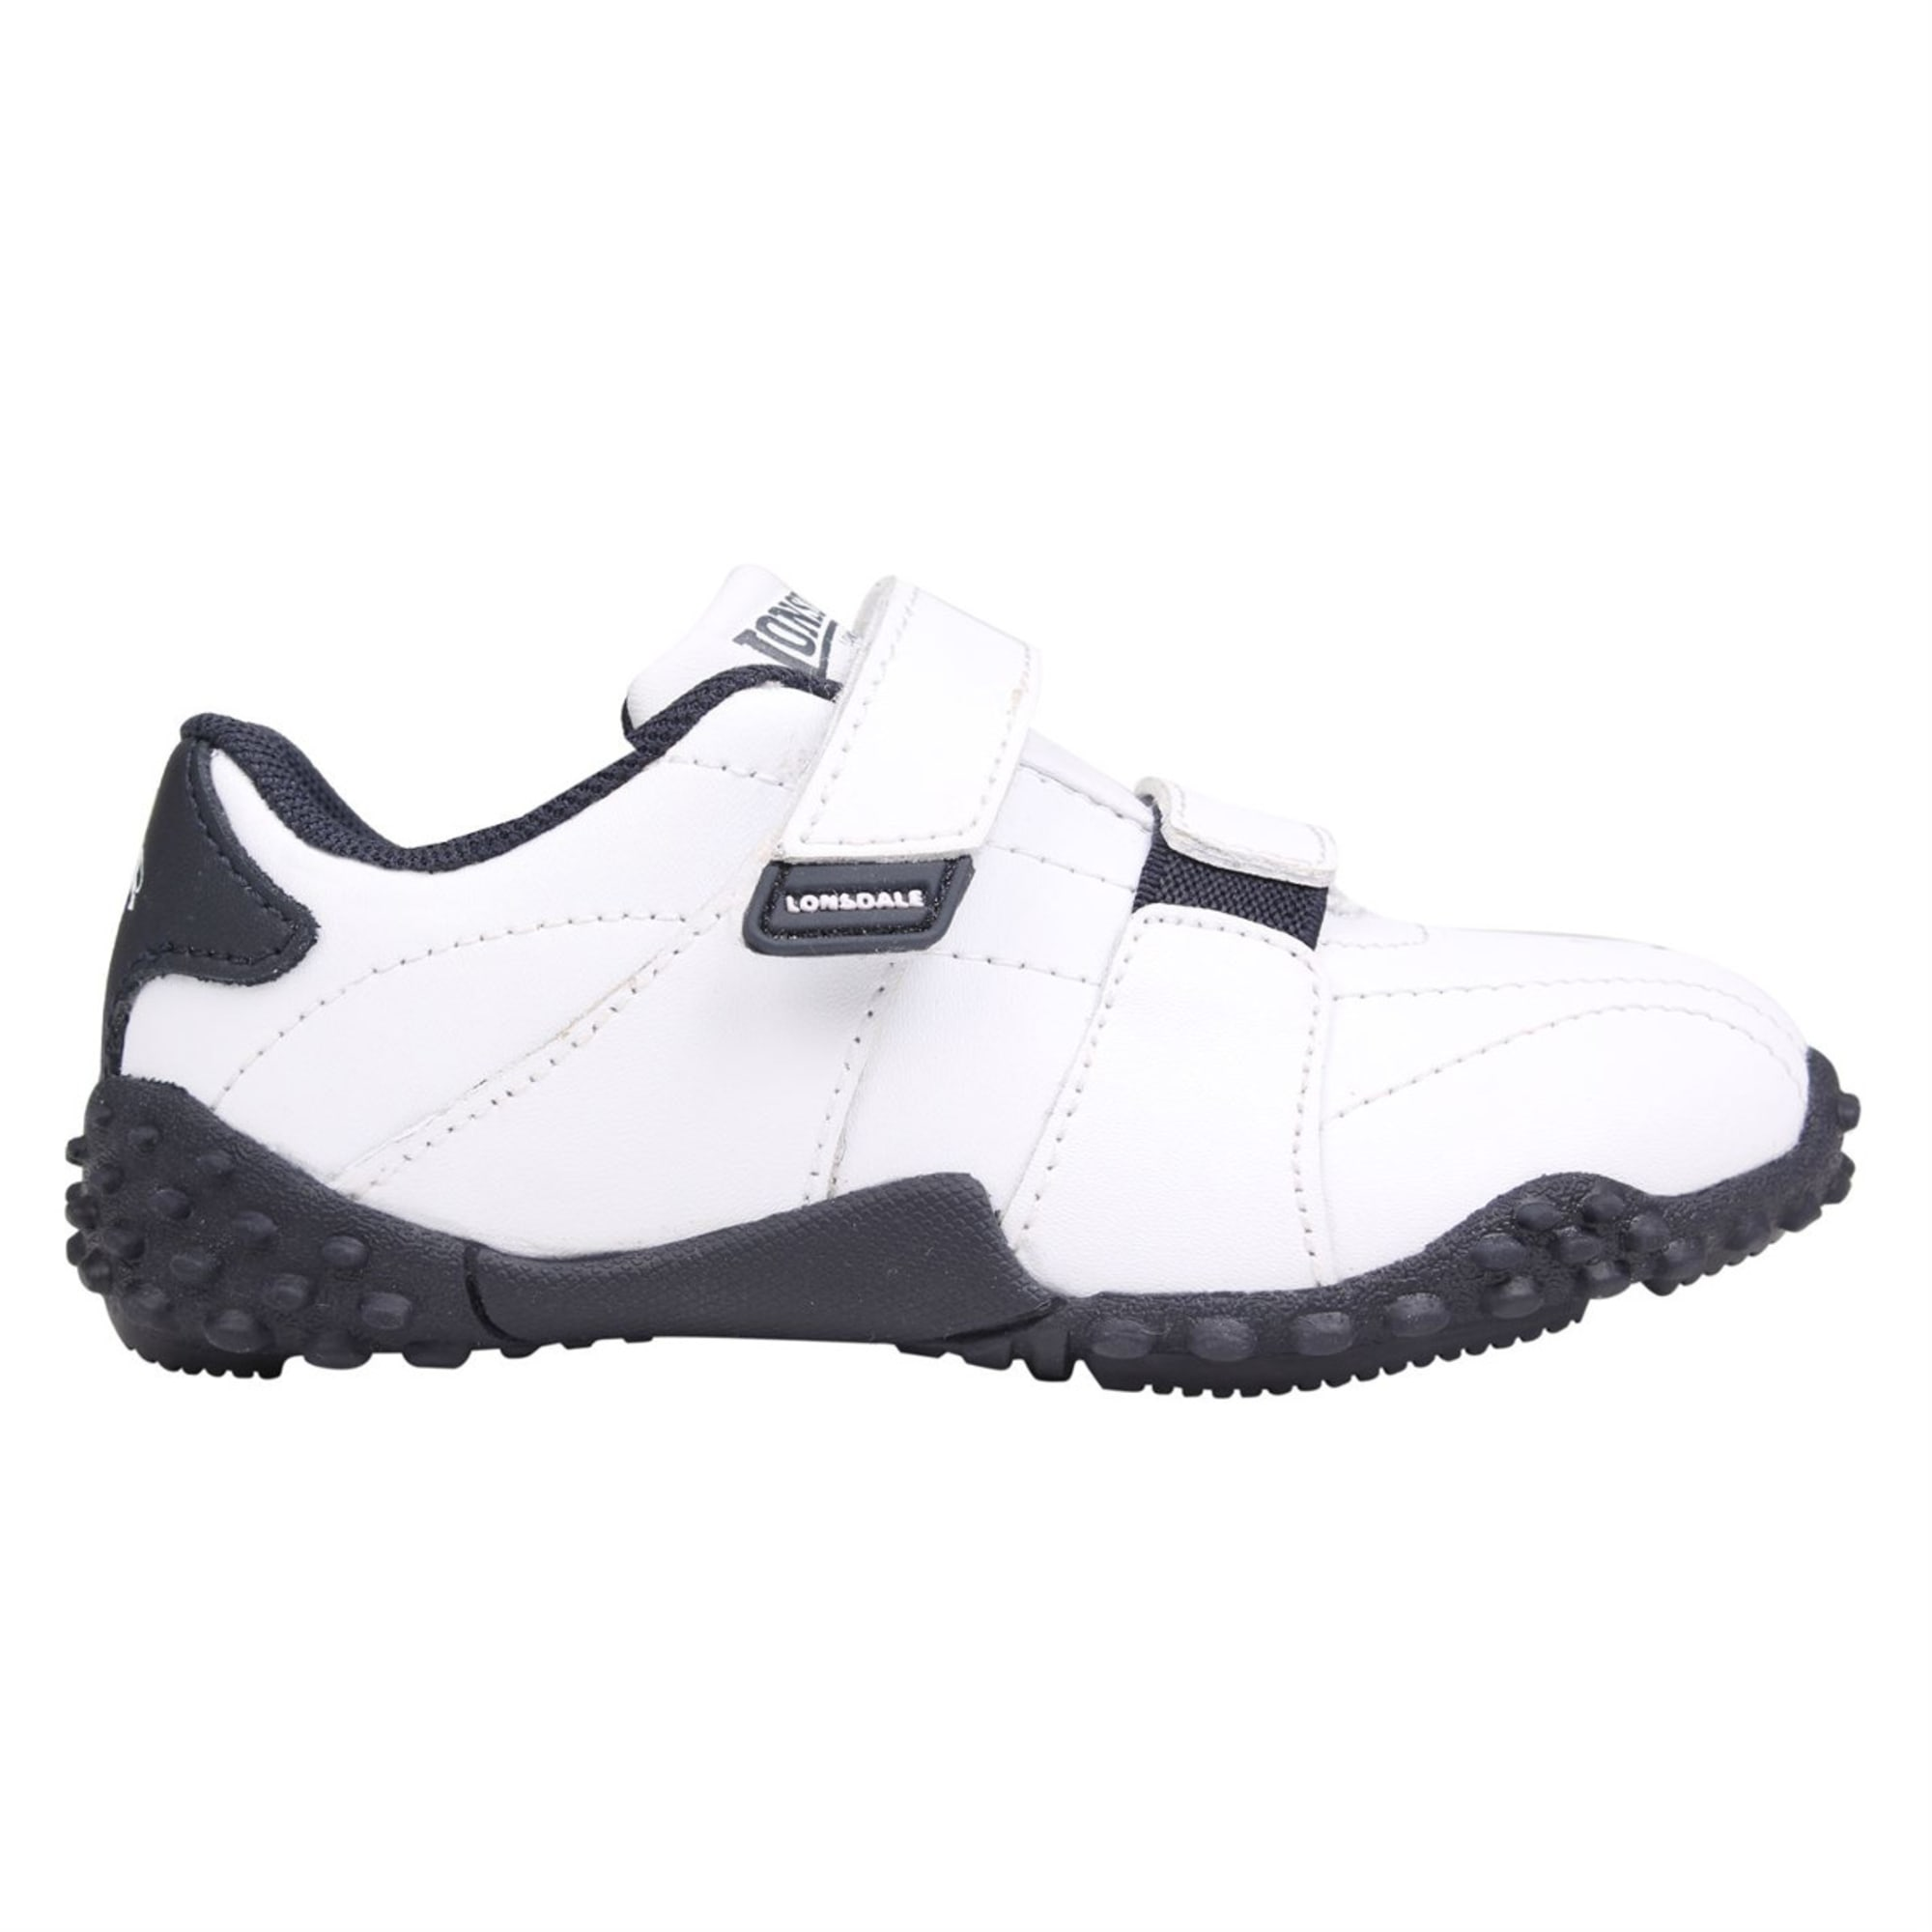 Lonsdale Kids Childrens Fulham Trainers Sports Padded Ankle Leather Footwear